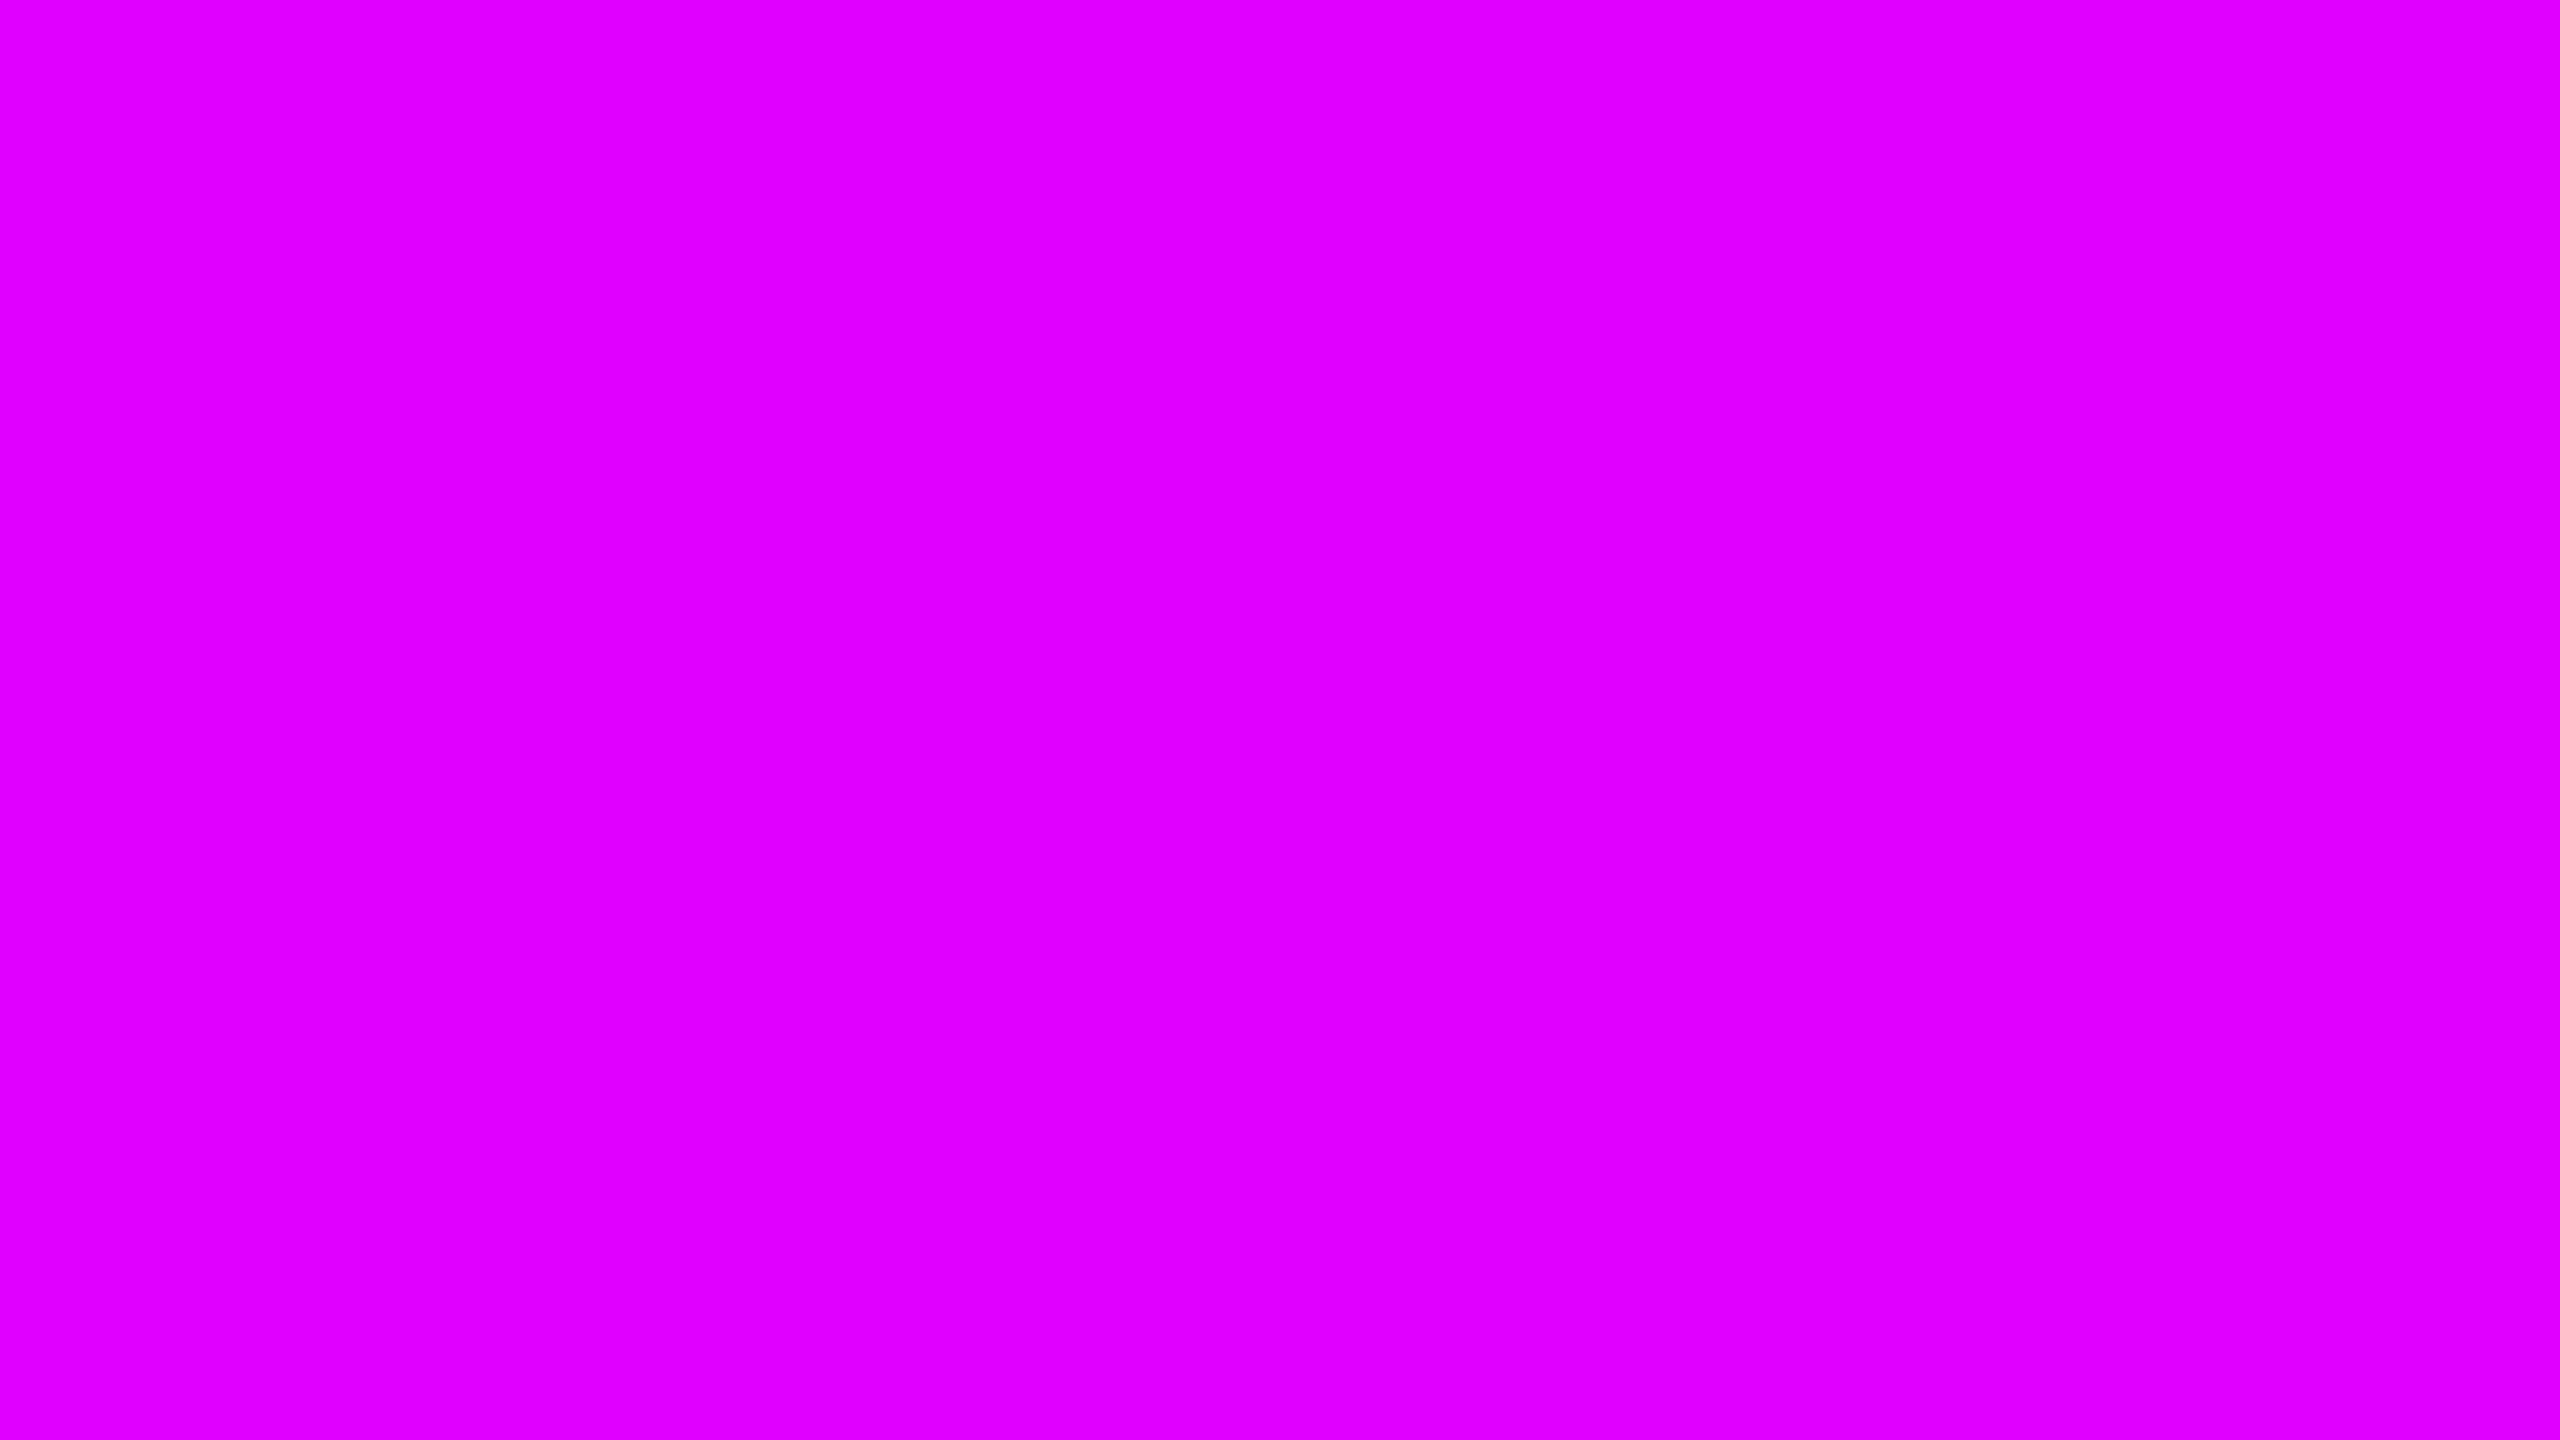 2560x1440 Phlox Solid Color Background